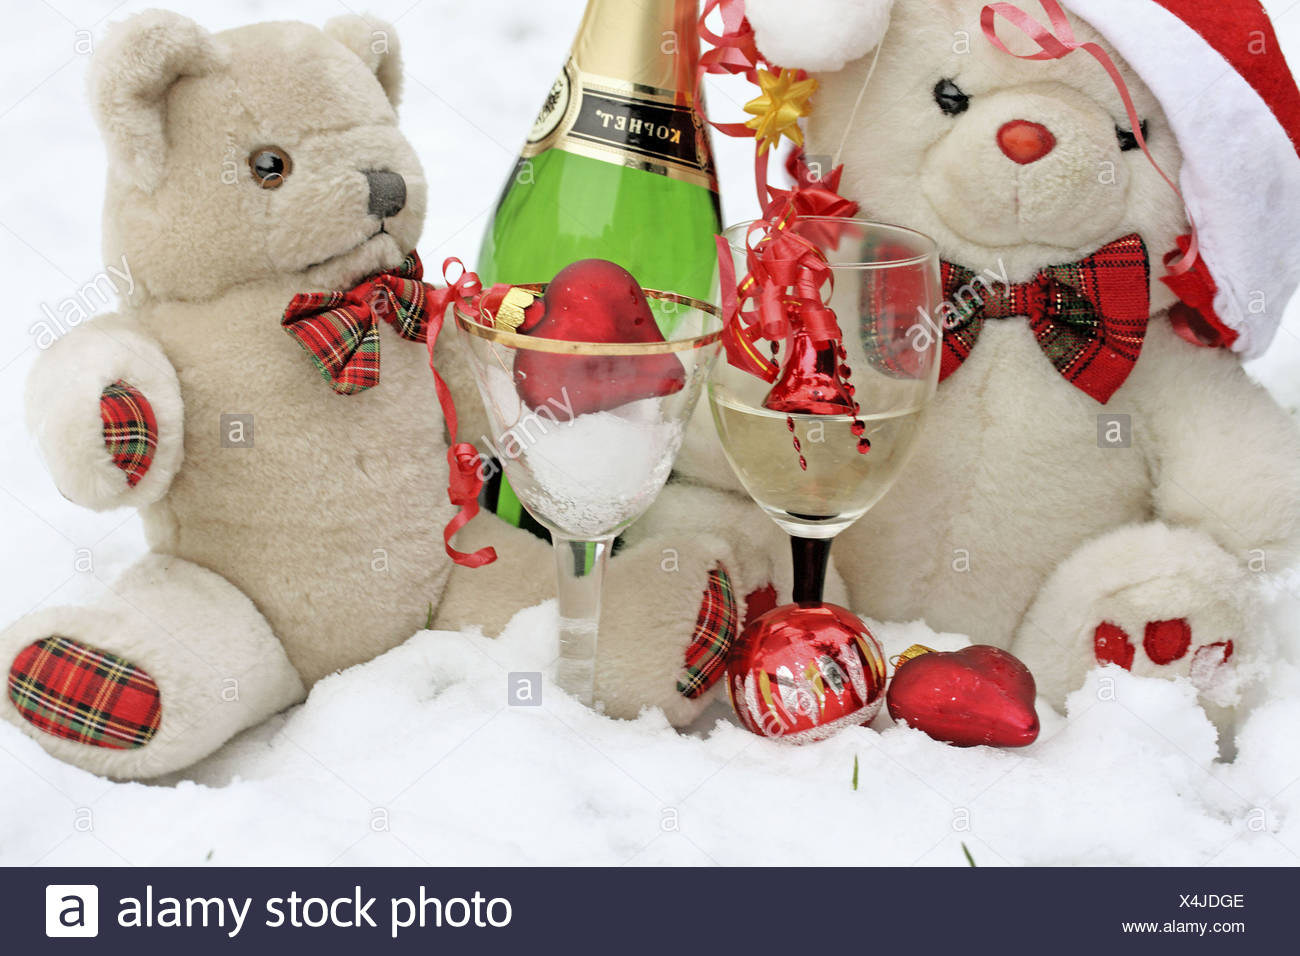 Bottle Wine And Teddy Stock Photos & Bottle Wine And Teddy Stock ...